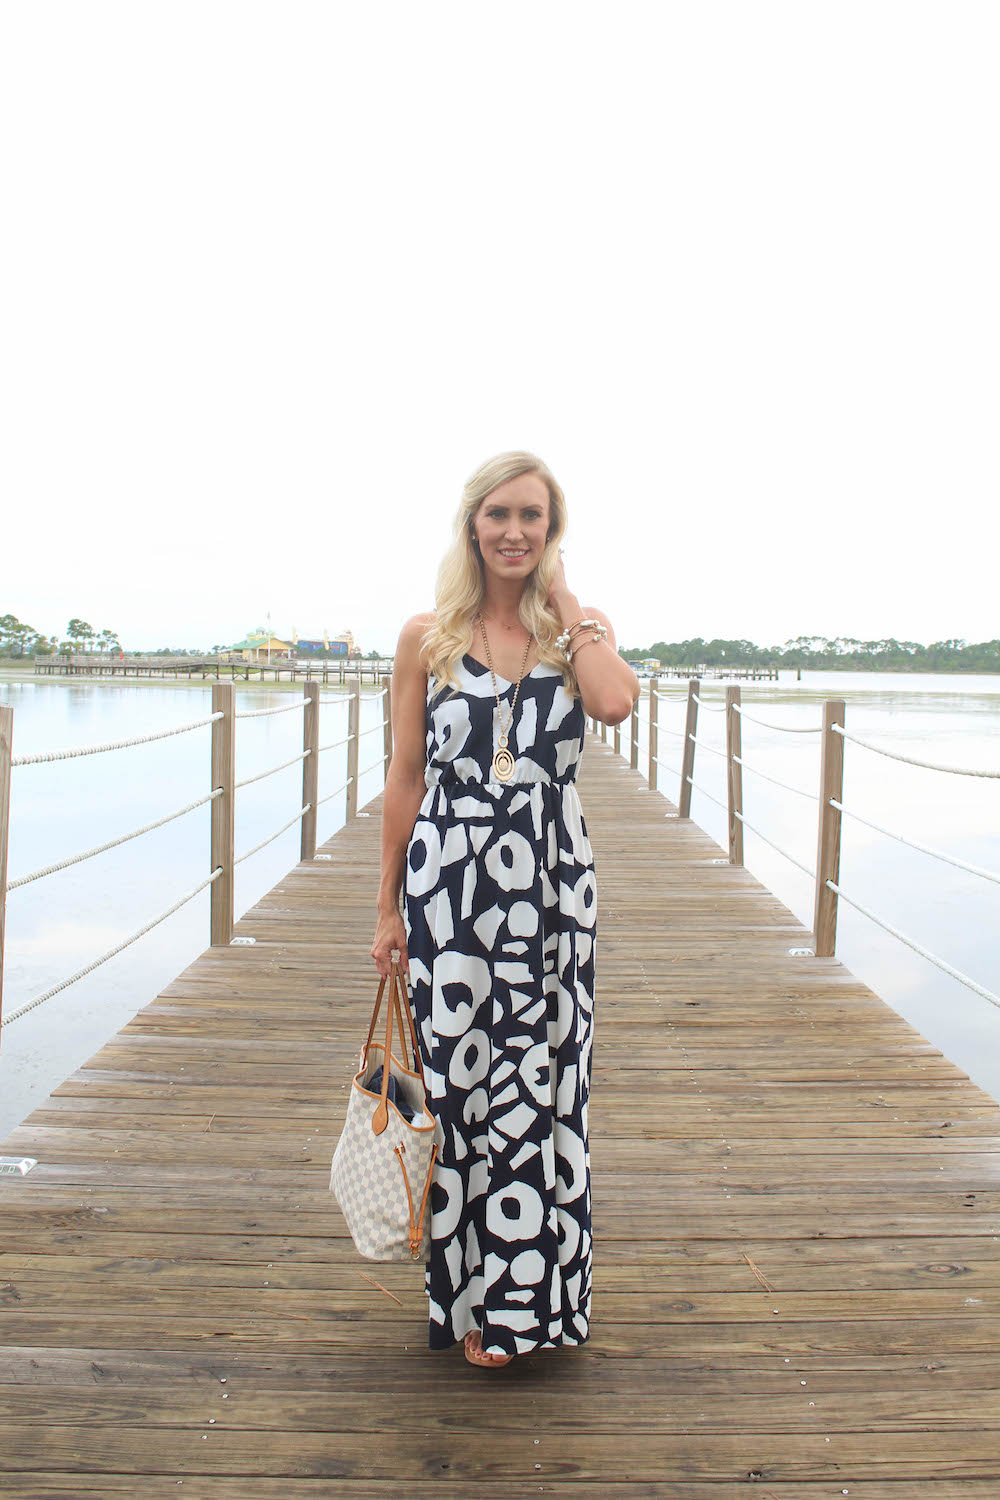 Allison-Cawley-Peachfully-Chic-Sheraton-Bay-Point-Resort-Dock-Florida-Travel-Blogger-2